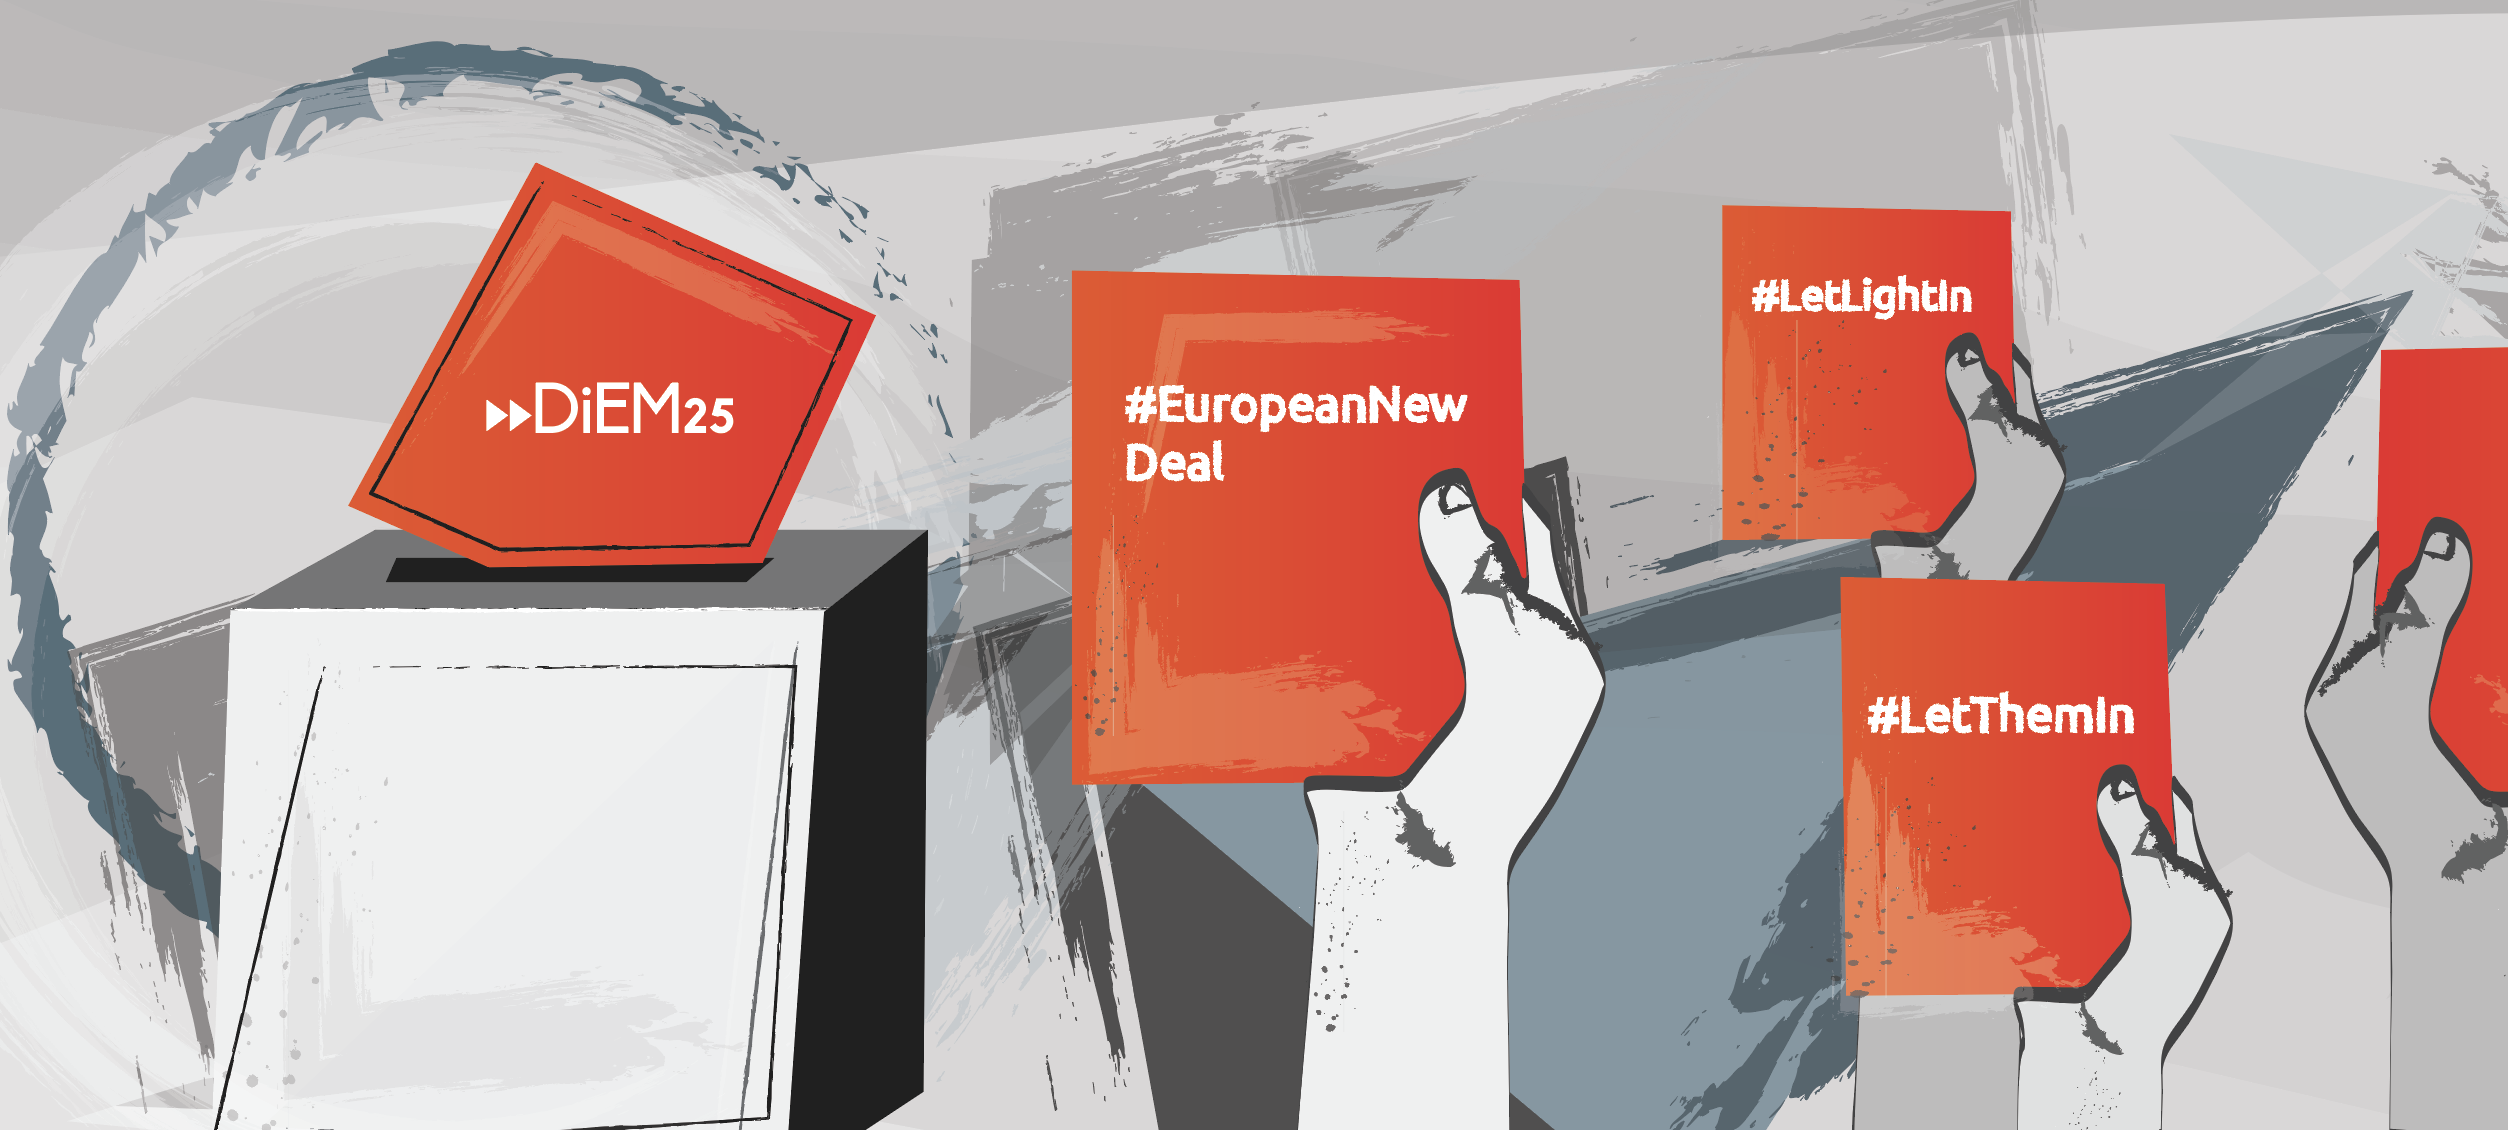 DiEM25 prepares to compete in elections